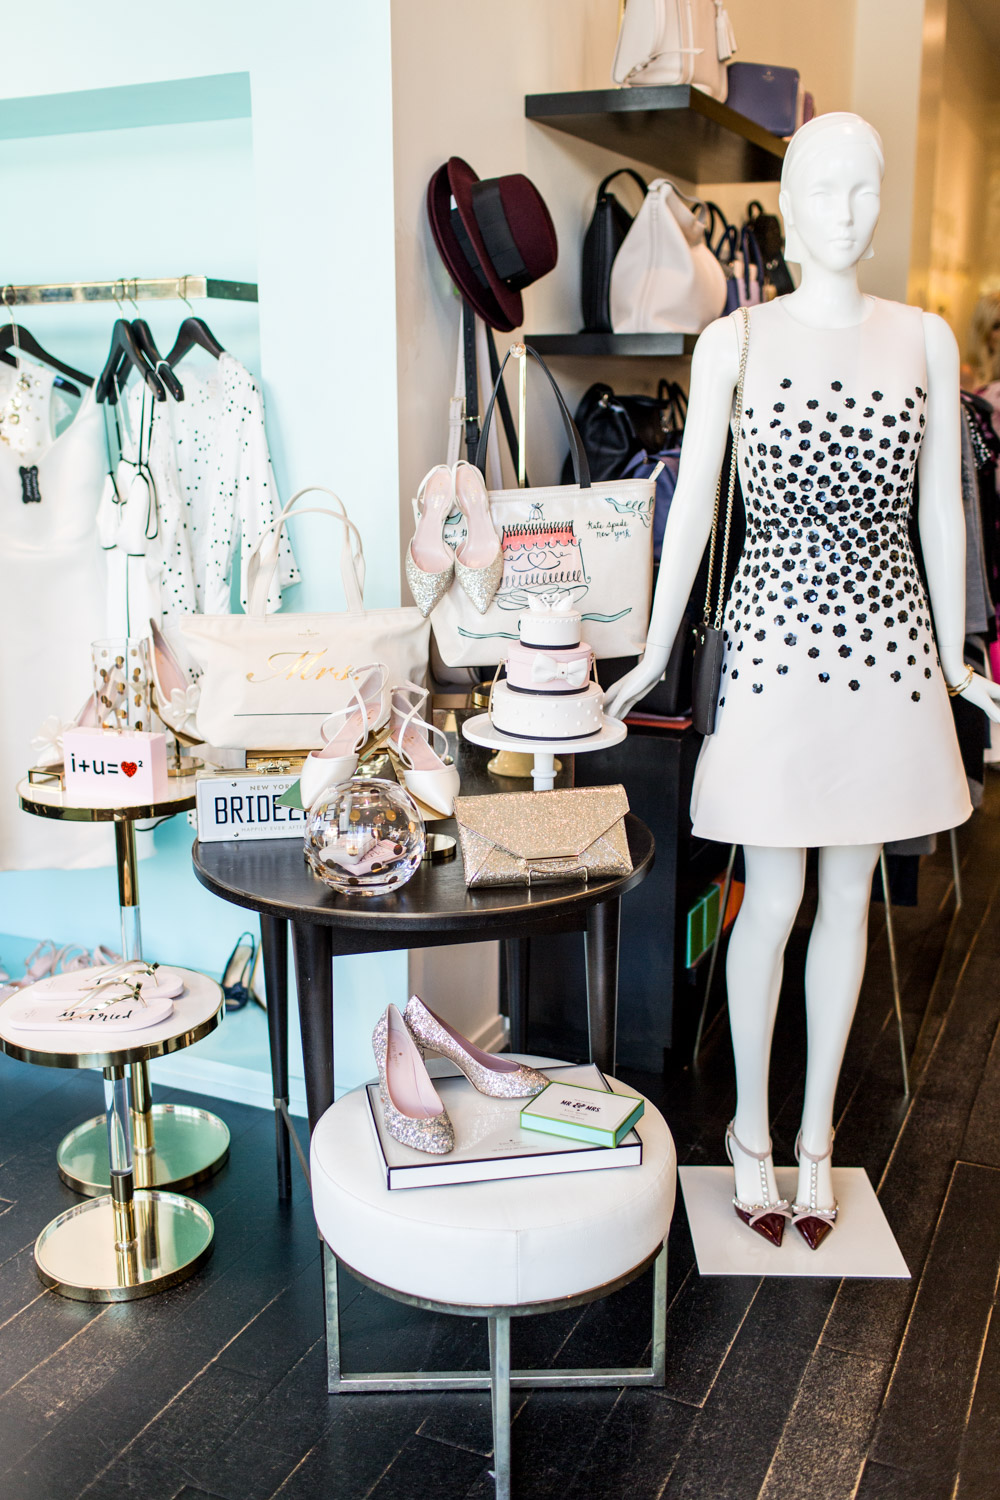 Kate Spade bridal collection handbags shoes stationery and decor, Cavin Elizabeth Photography